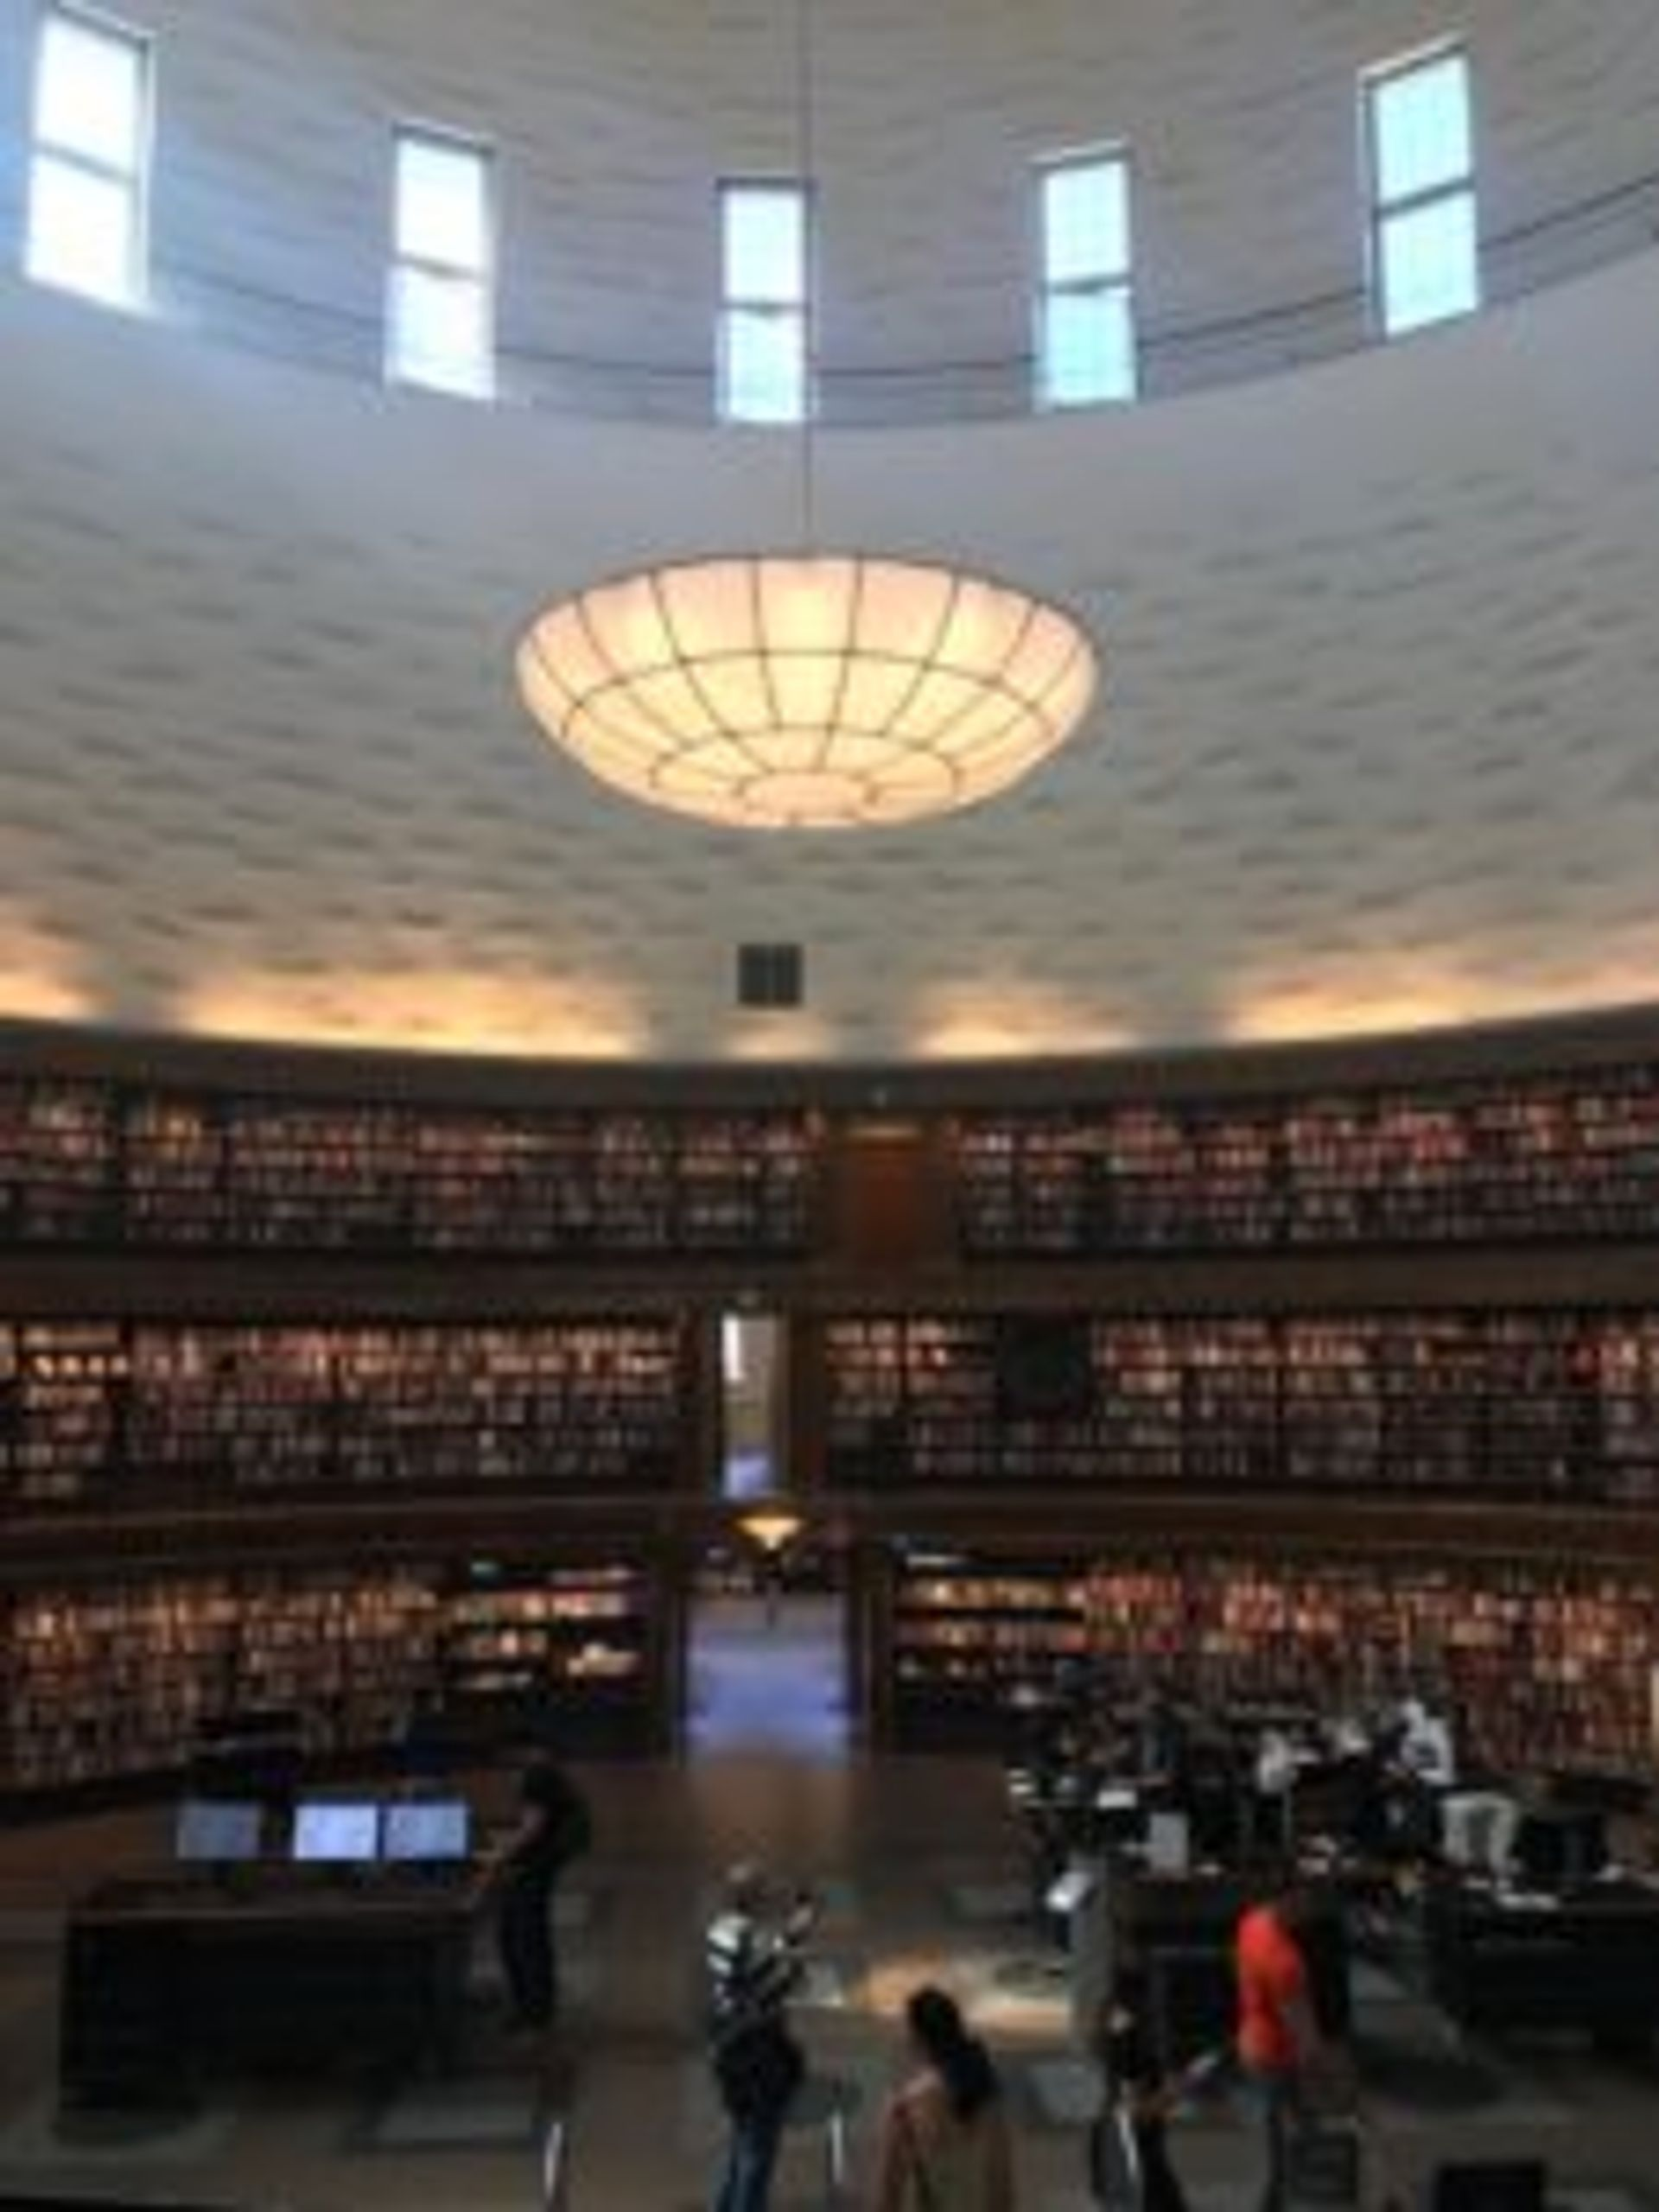 Thousands of books in Stockholm's City Library.